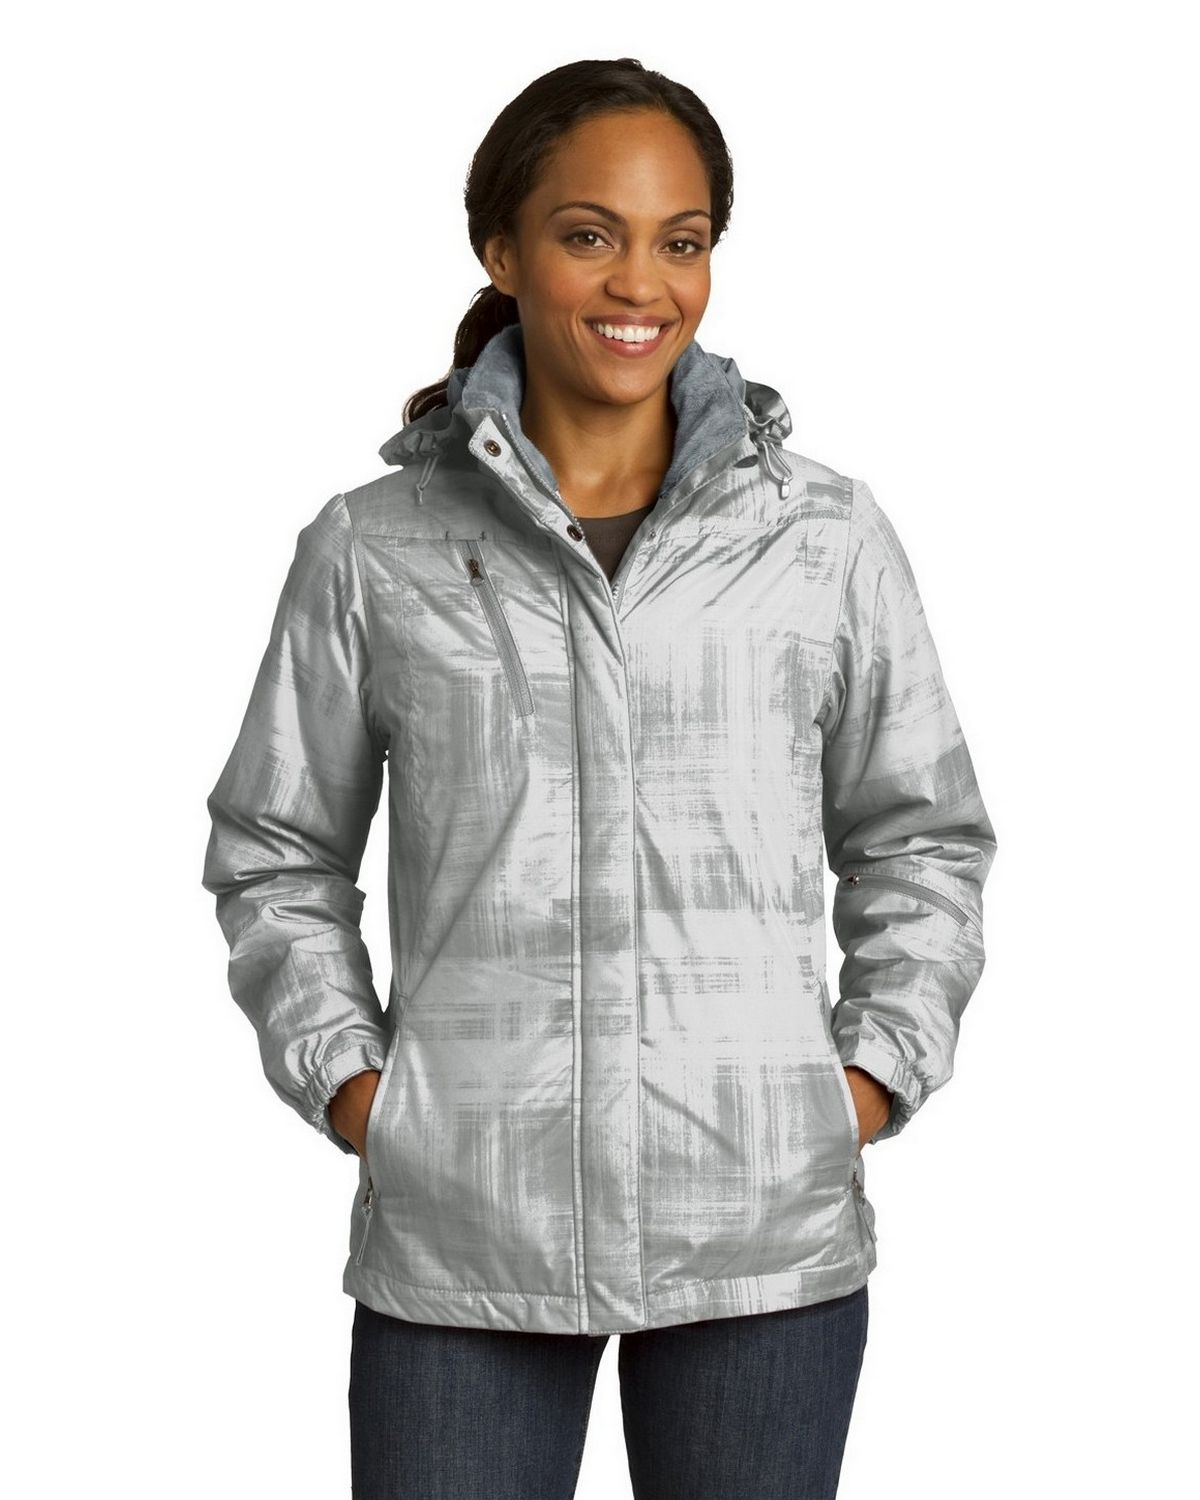 42d93e63e03 Buy Port Authority L320 Ladies Brushstroke Print Insulated Jacket